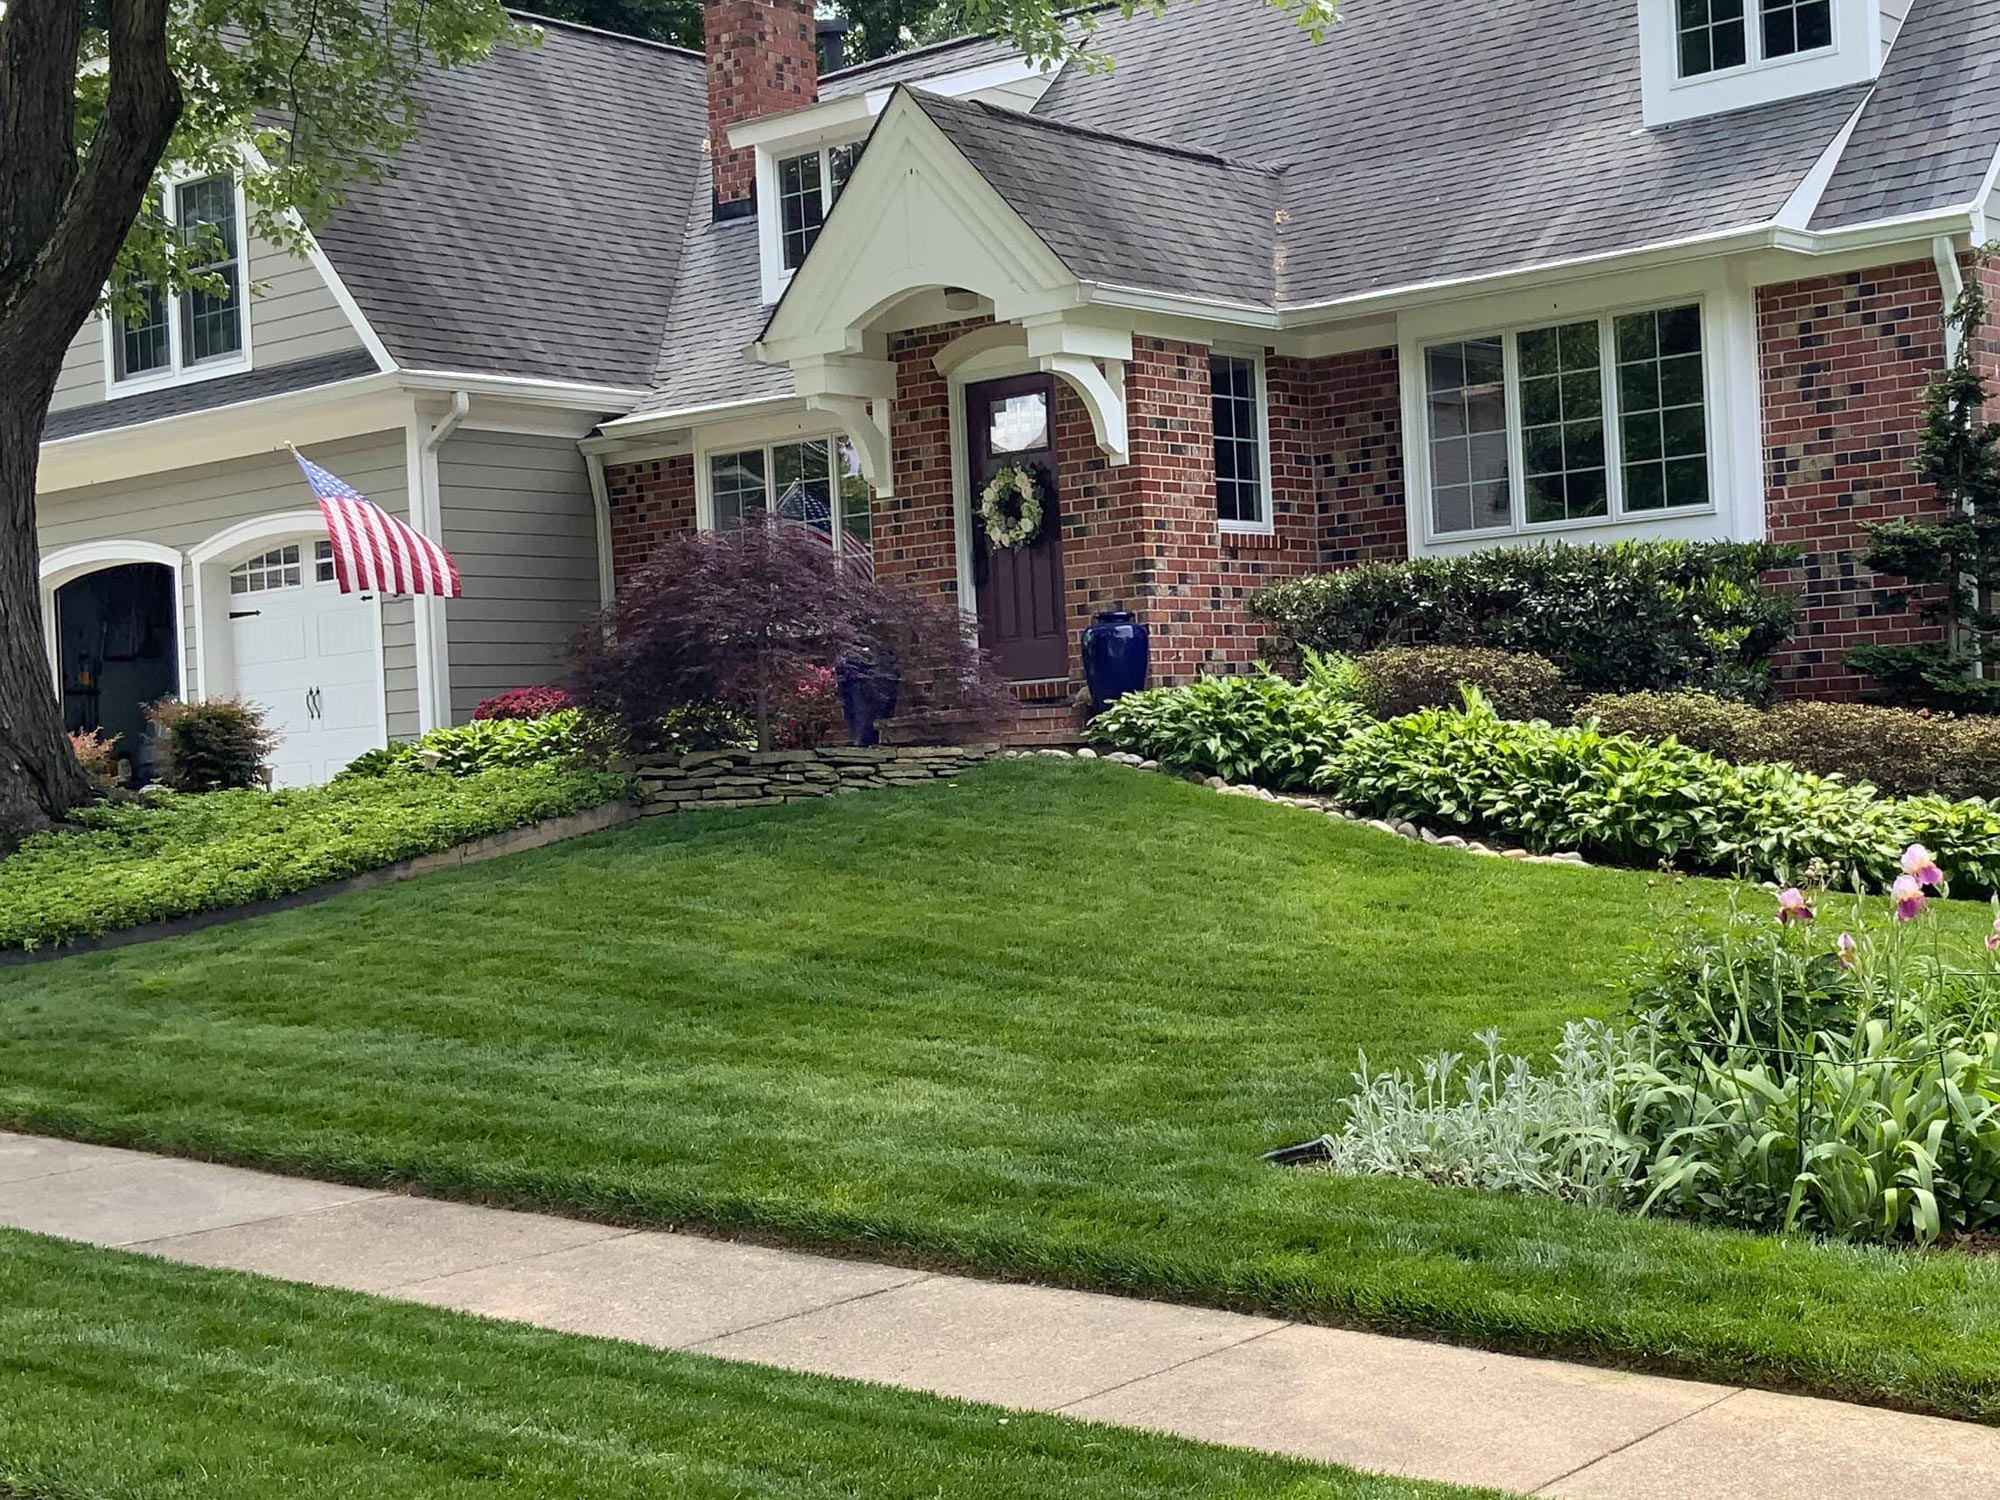 Mowing lawn of suburban home